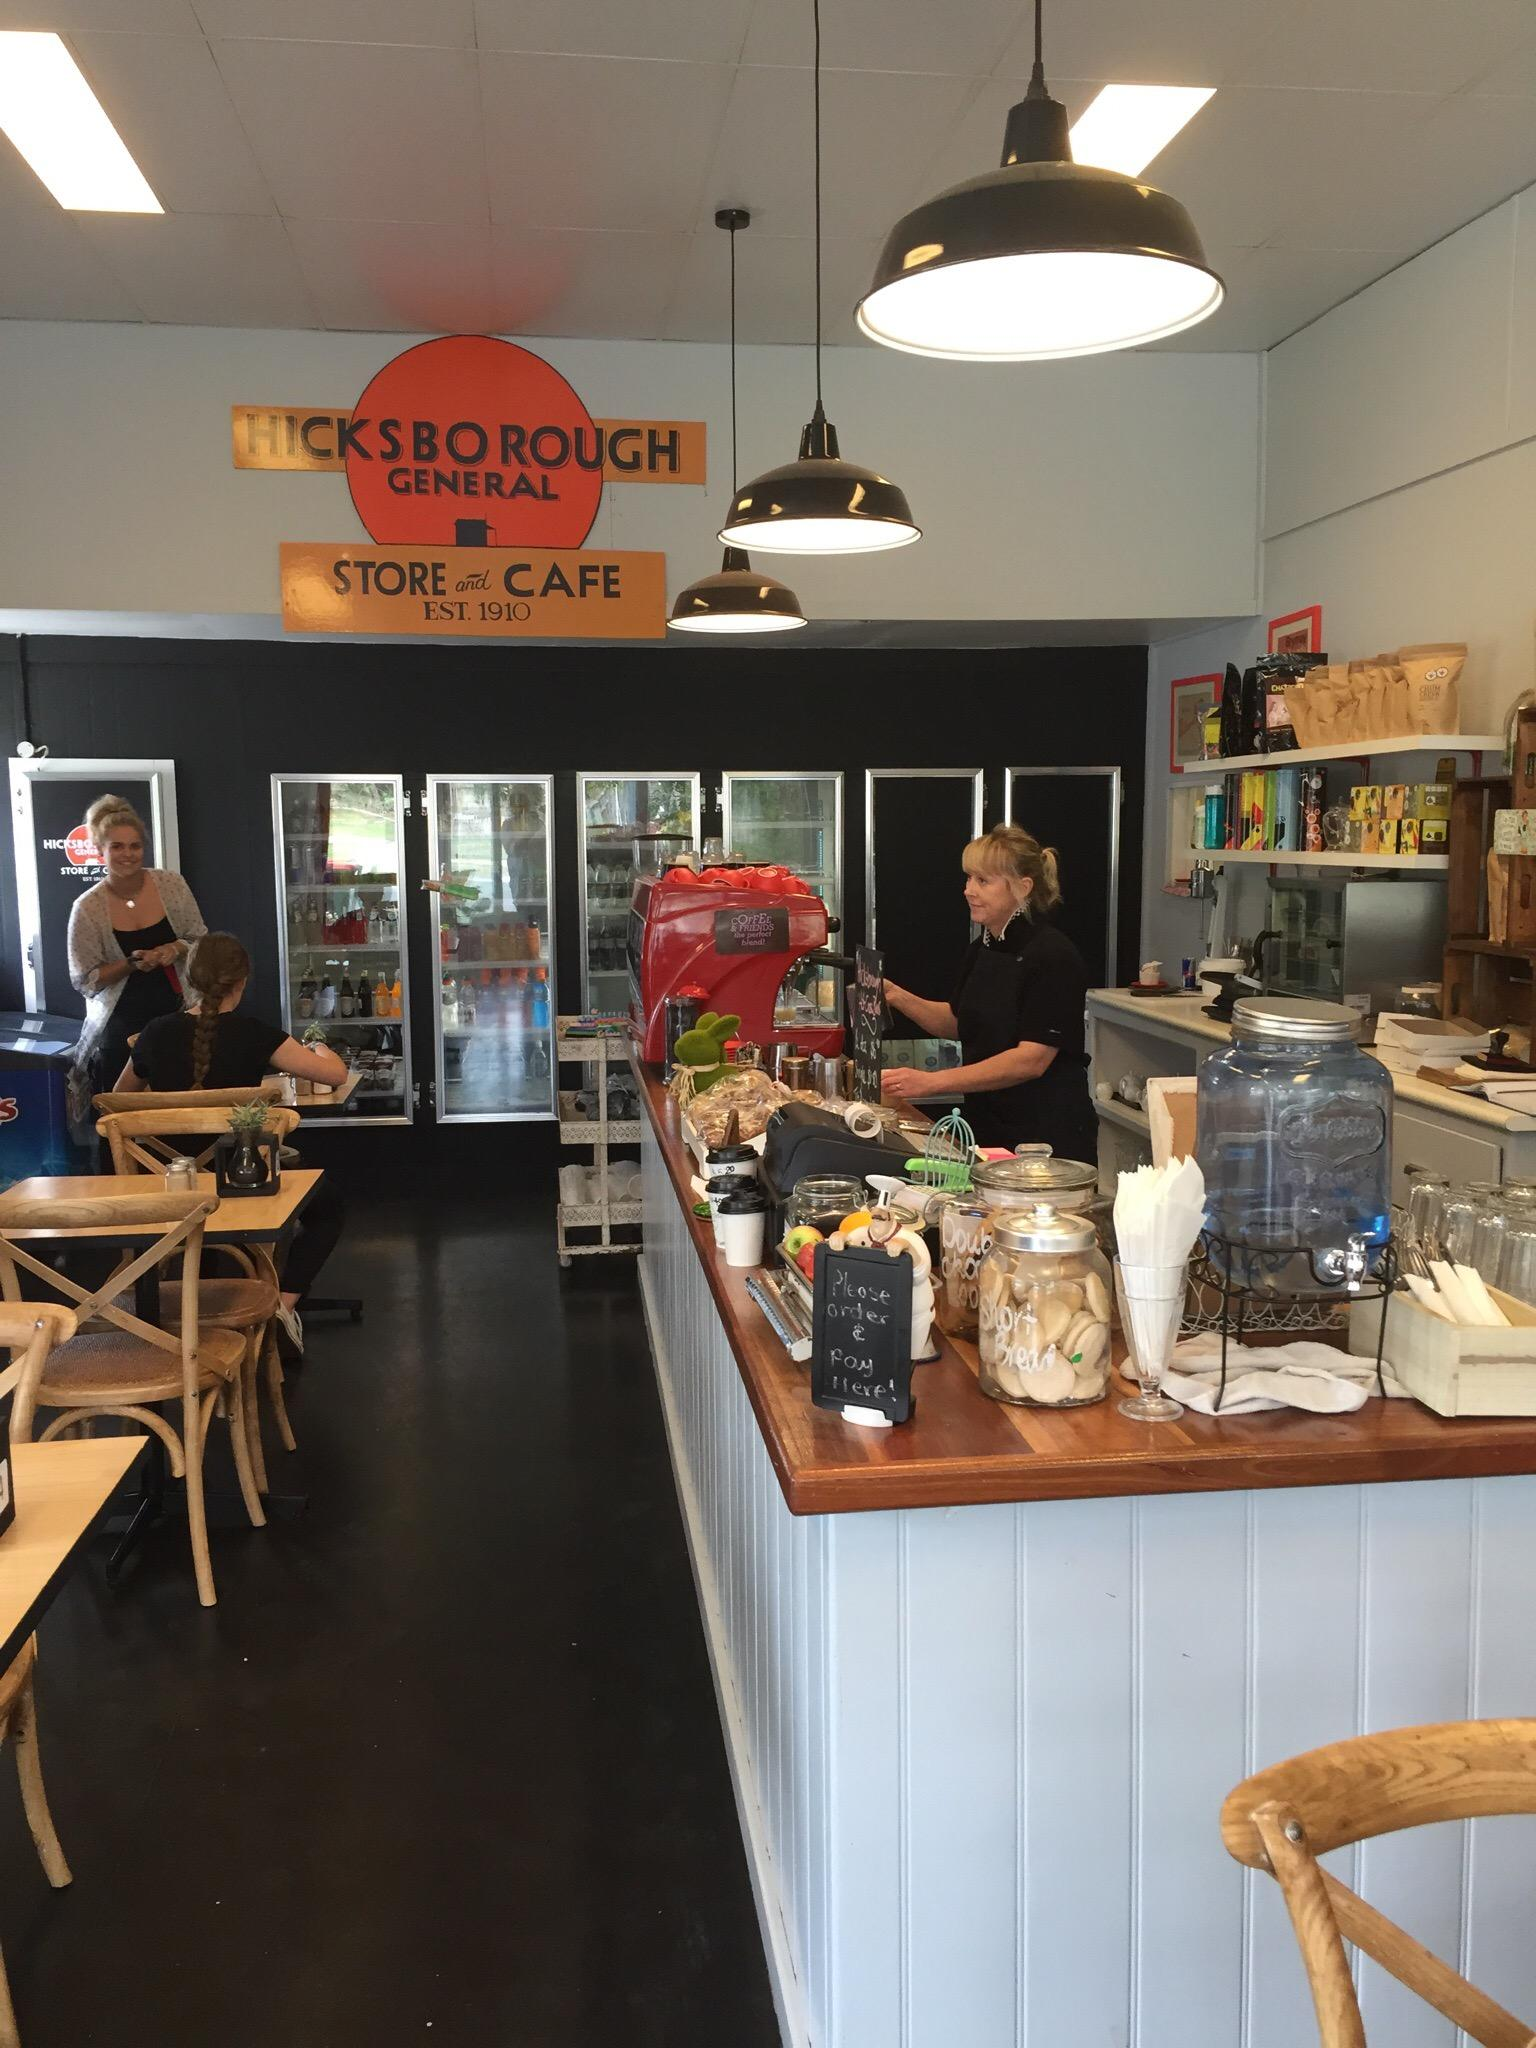 Hicksborough General store And cafe | 184 White Road, North Wonthaggi, Victoria 3995 | +61 3 5672 1402